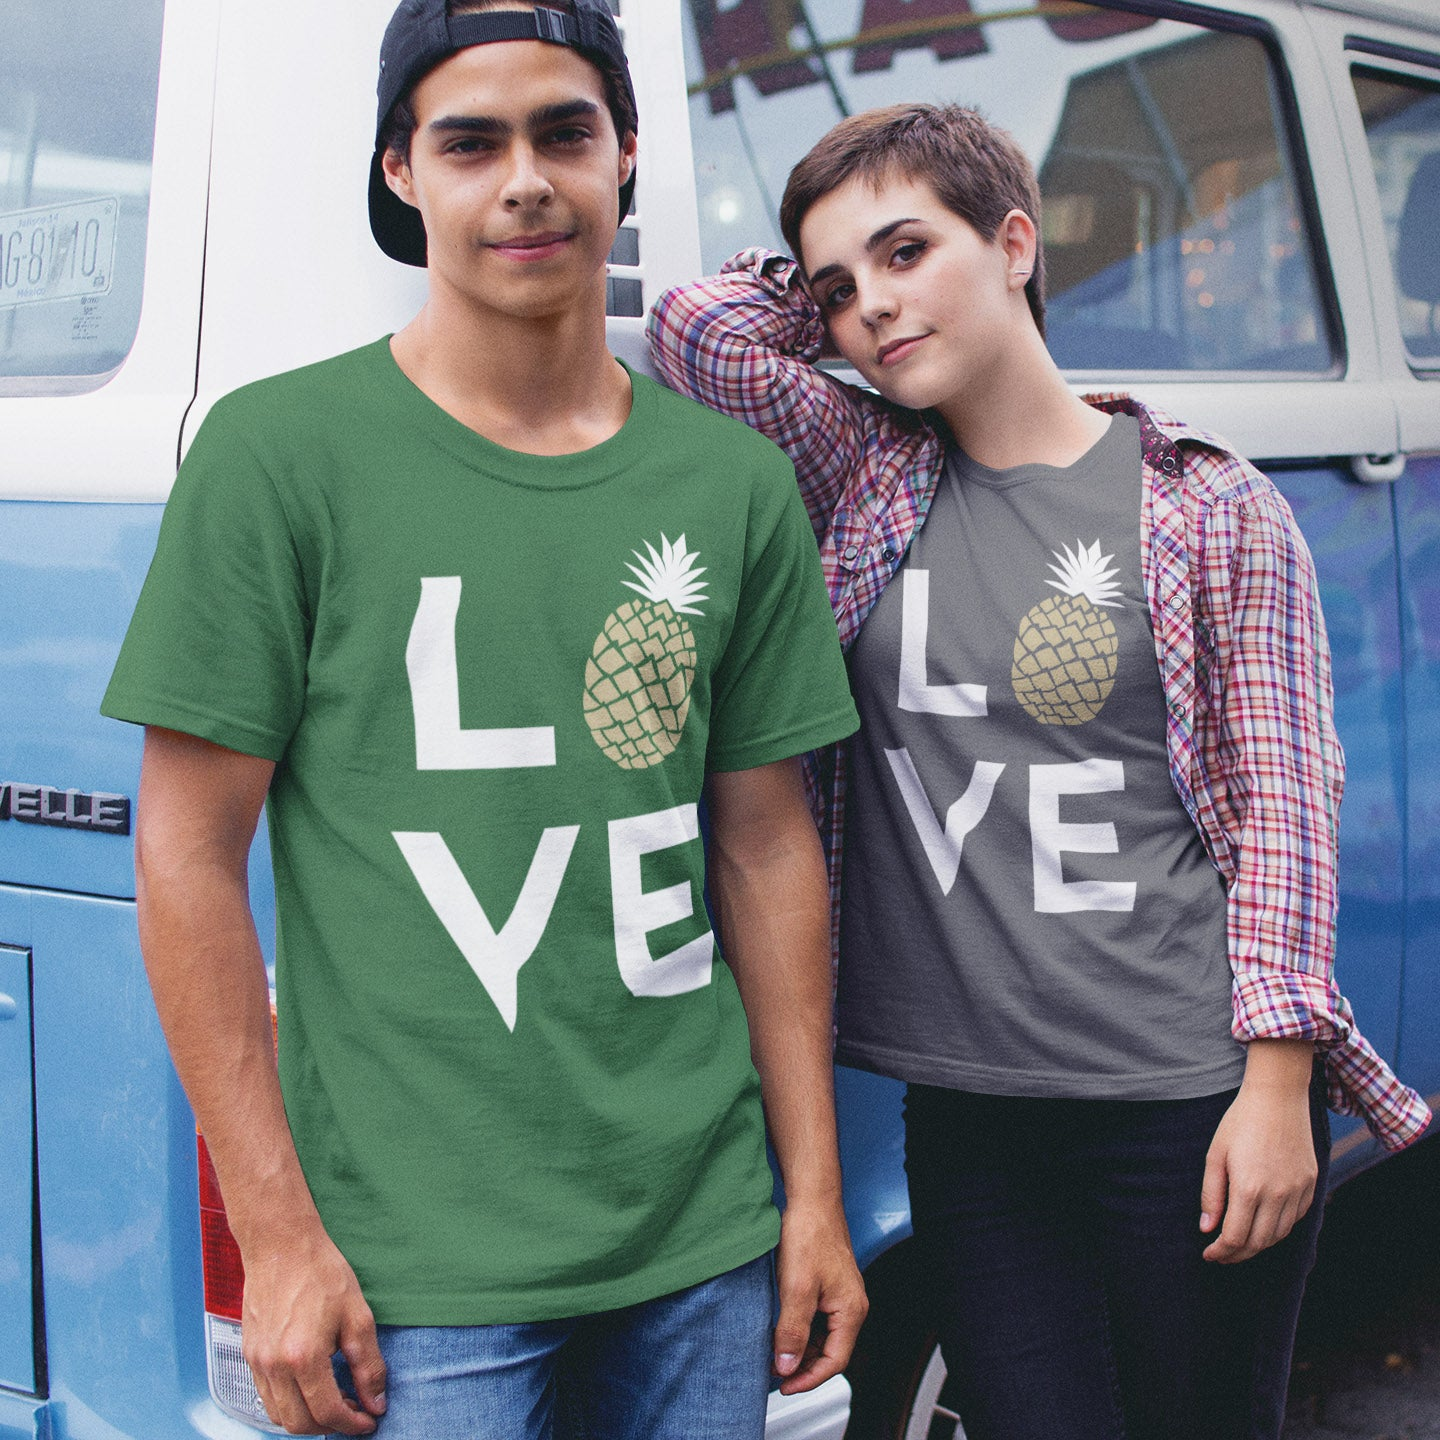 Pineapple Love Men's Tee - THE PINEAPPLE EVERYTHING